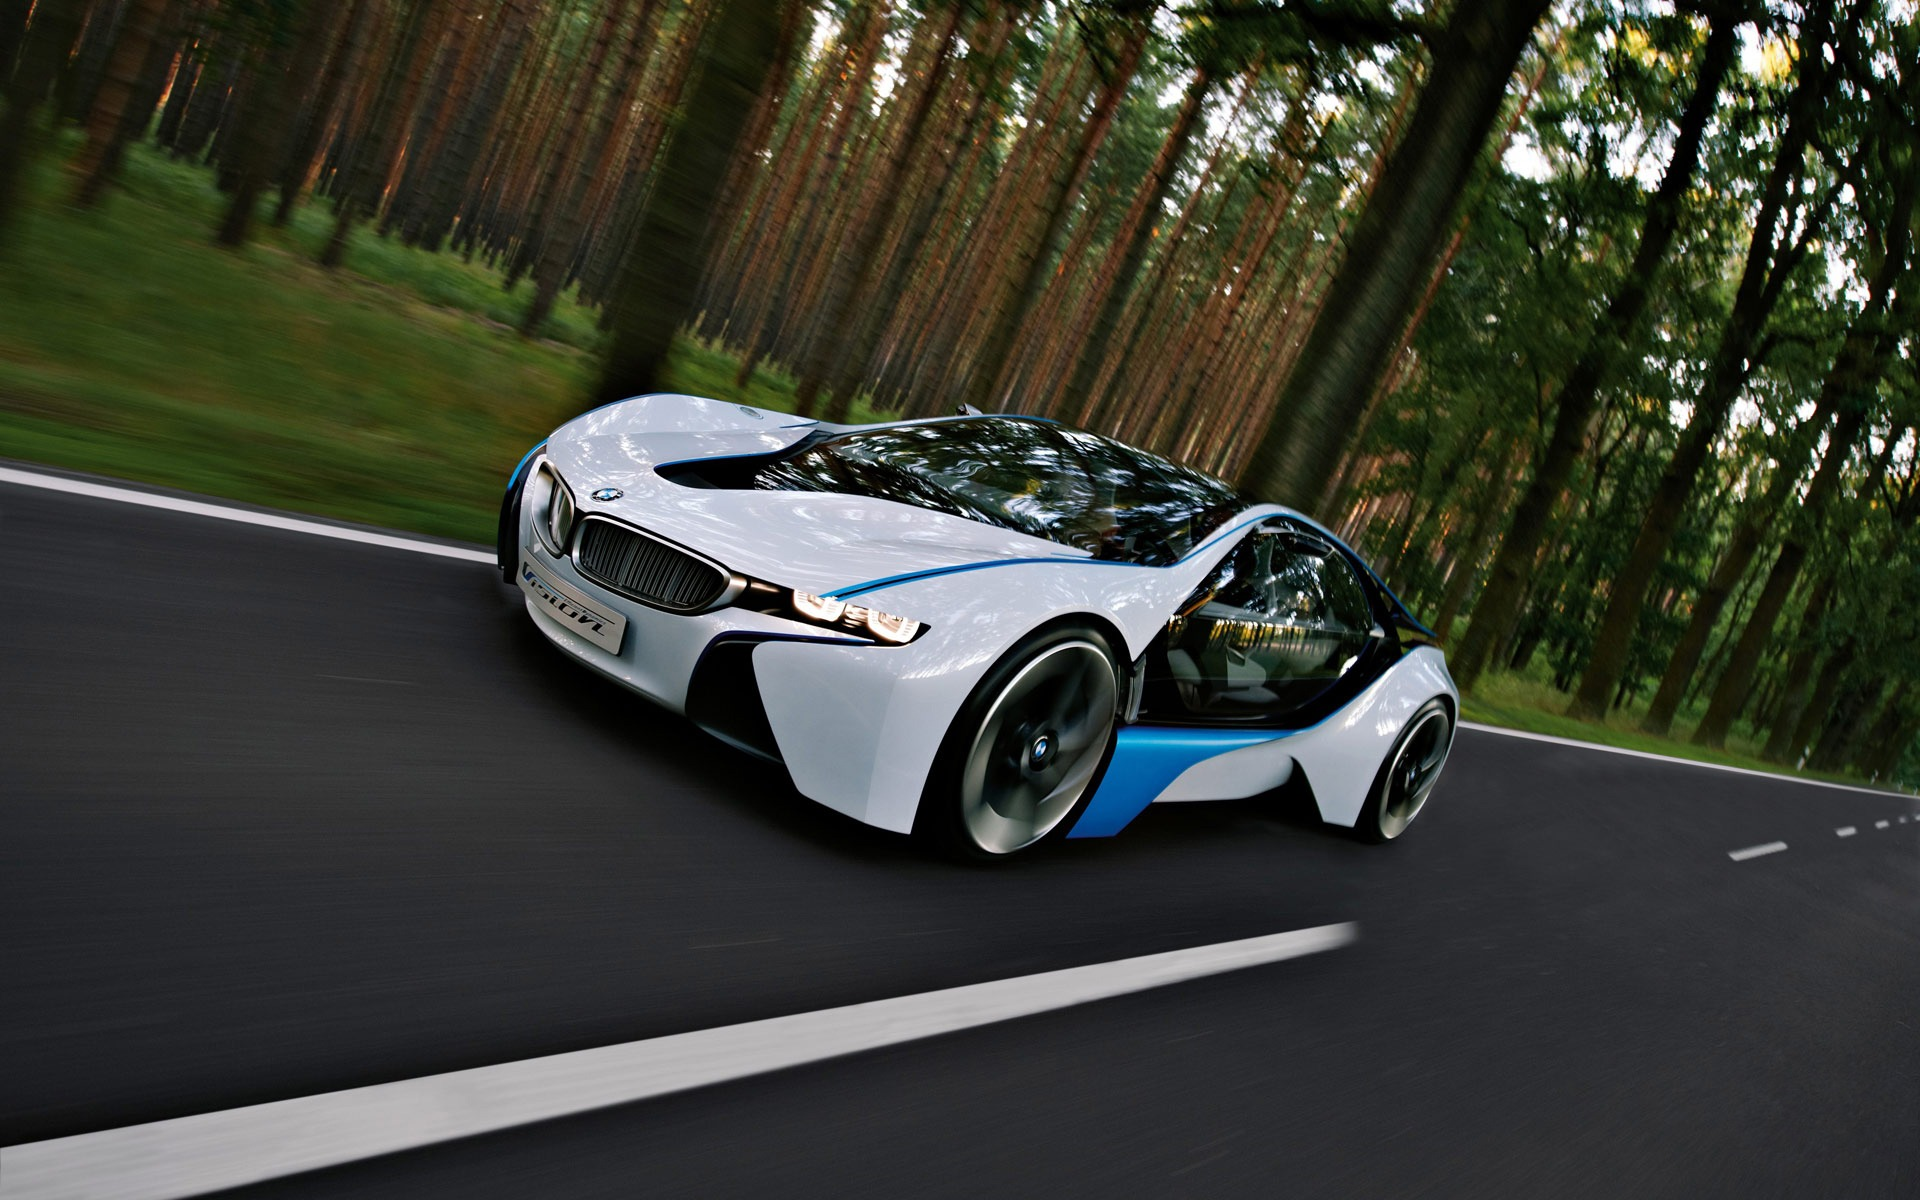 Beautiful BMW Vision Wallpaper BMW Cars Wallpapers